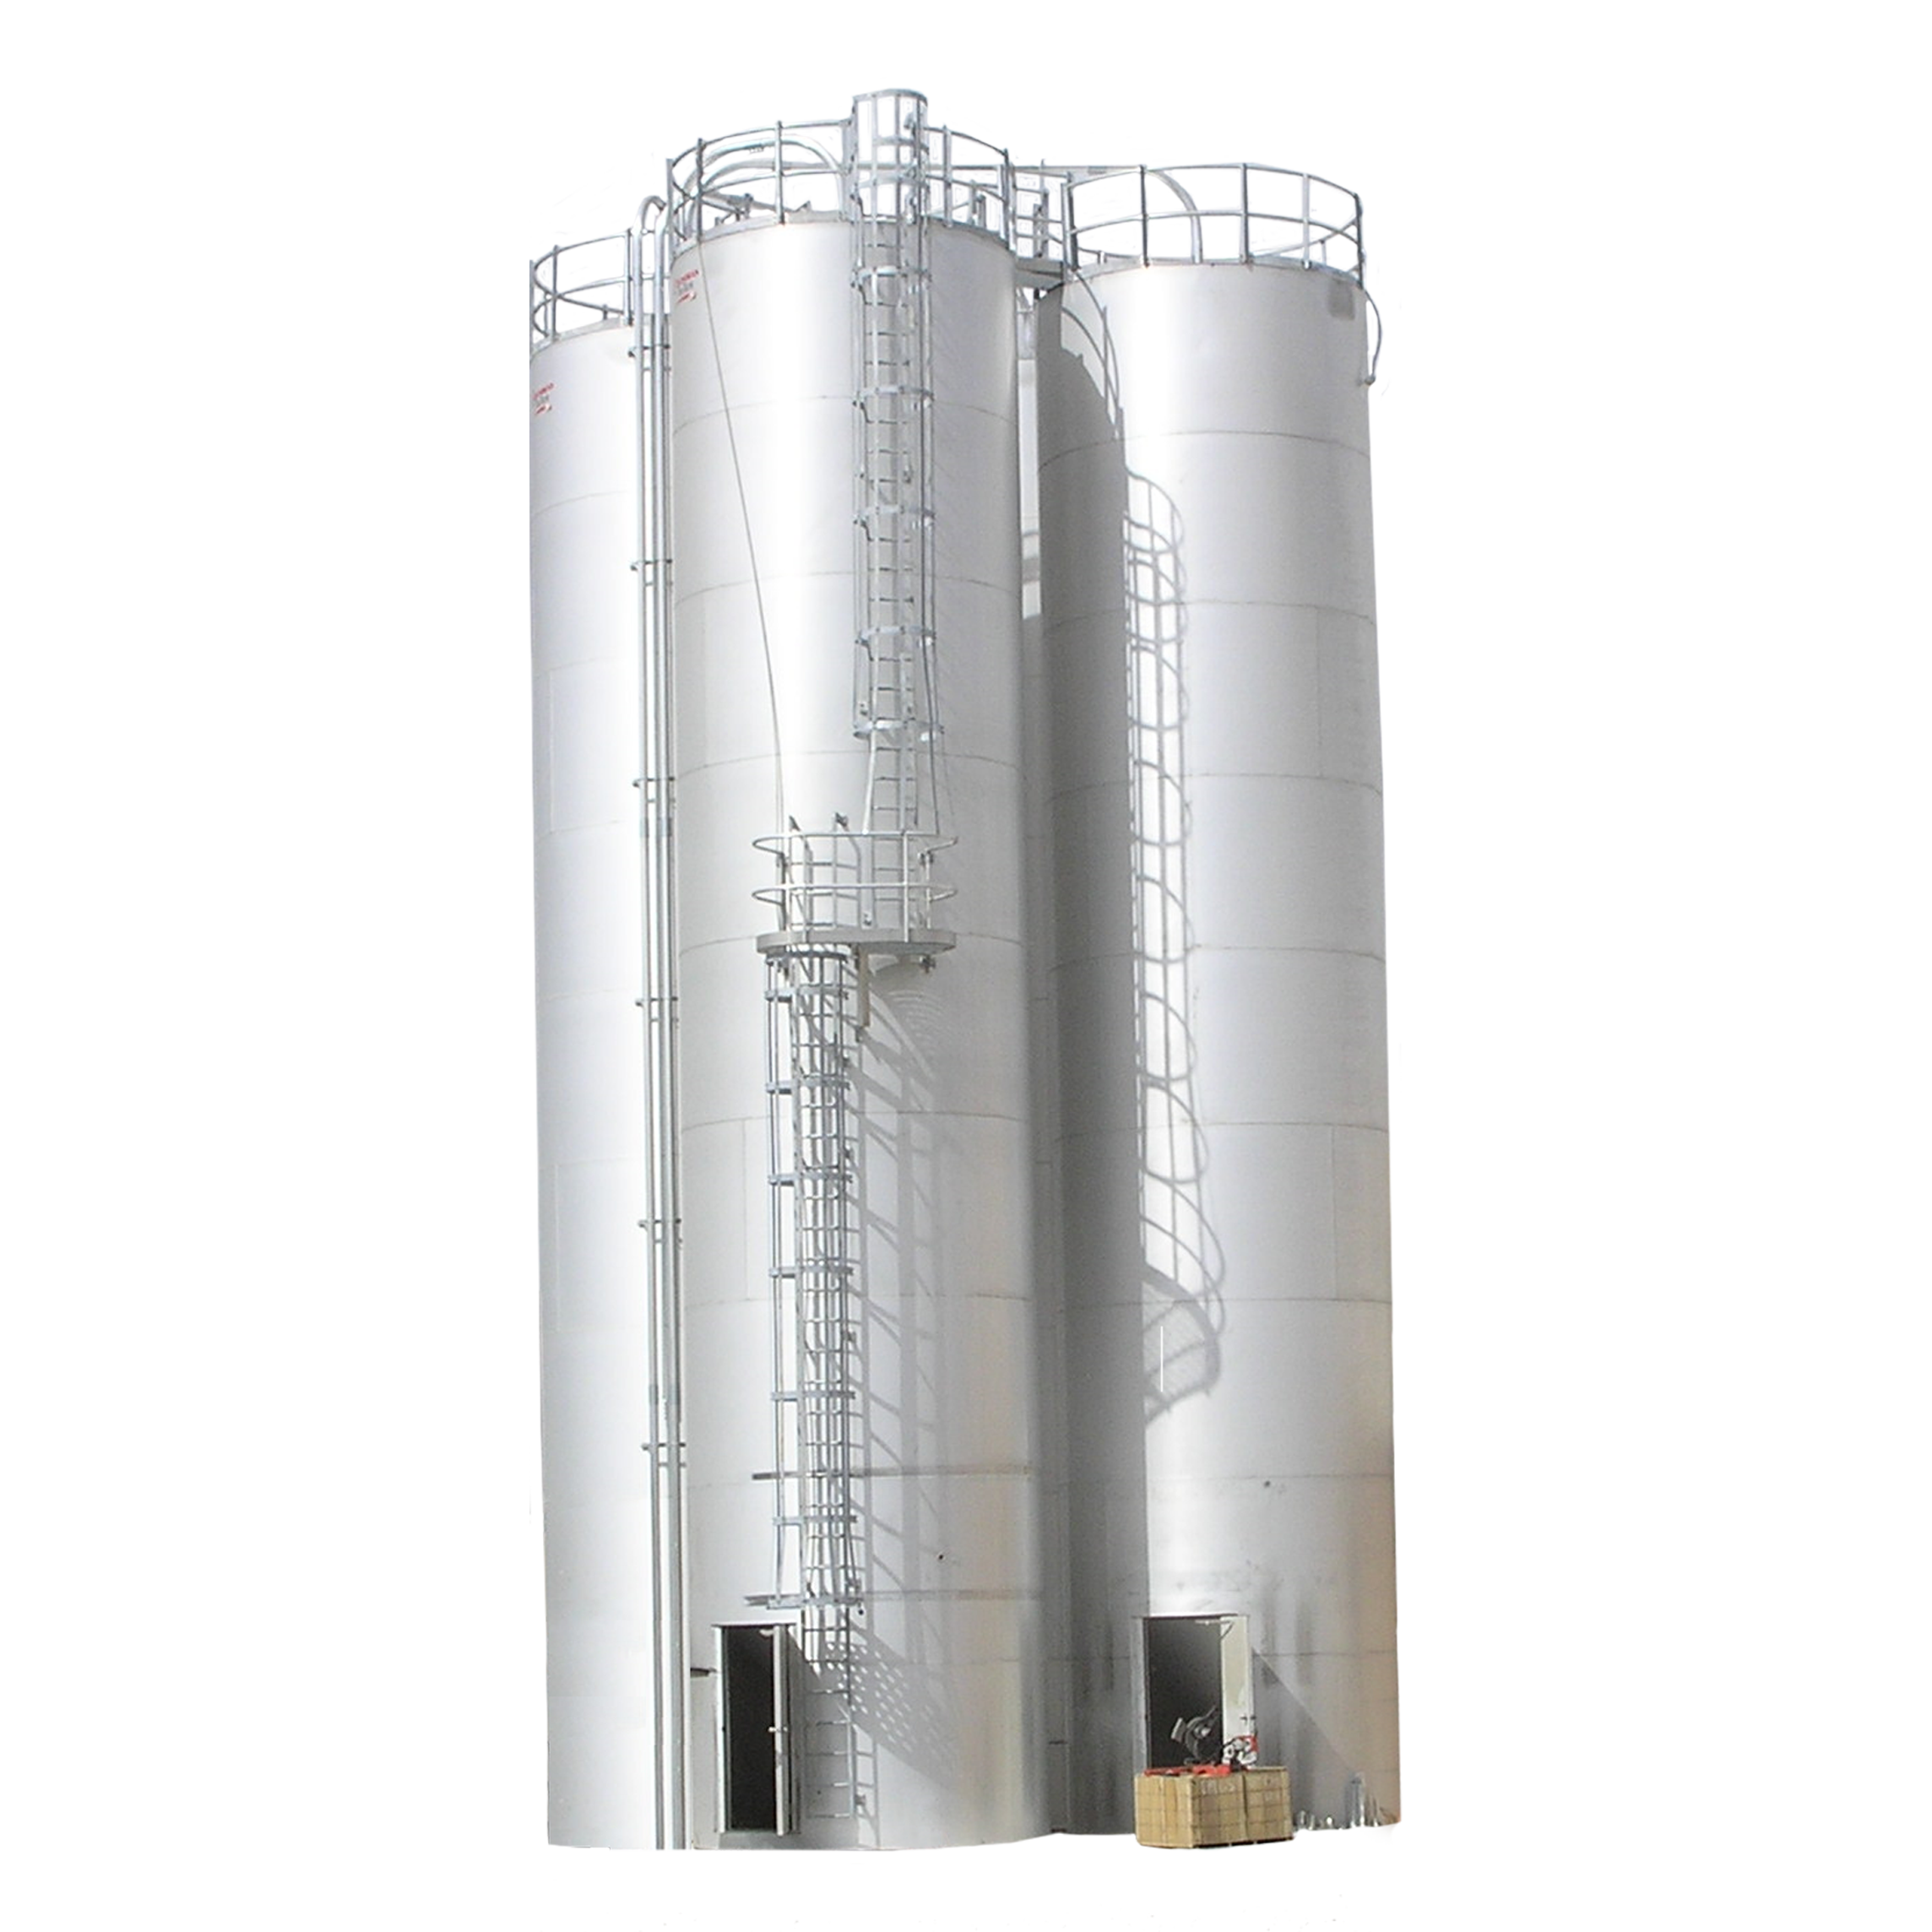 Silo PNG Images.